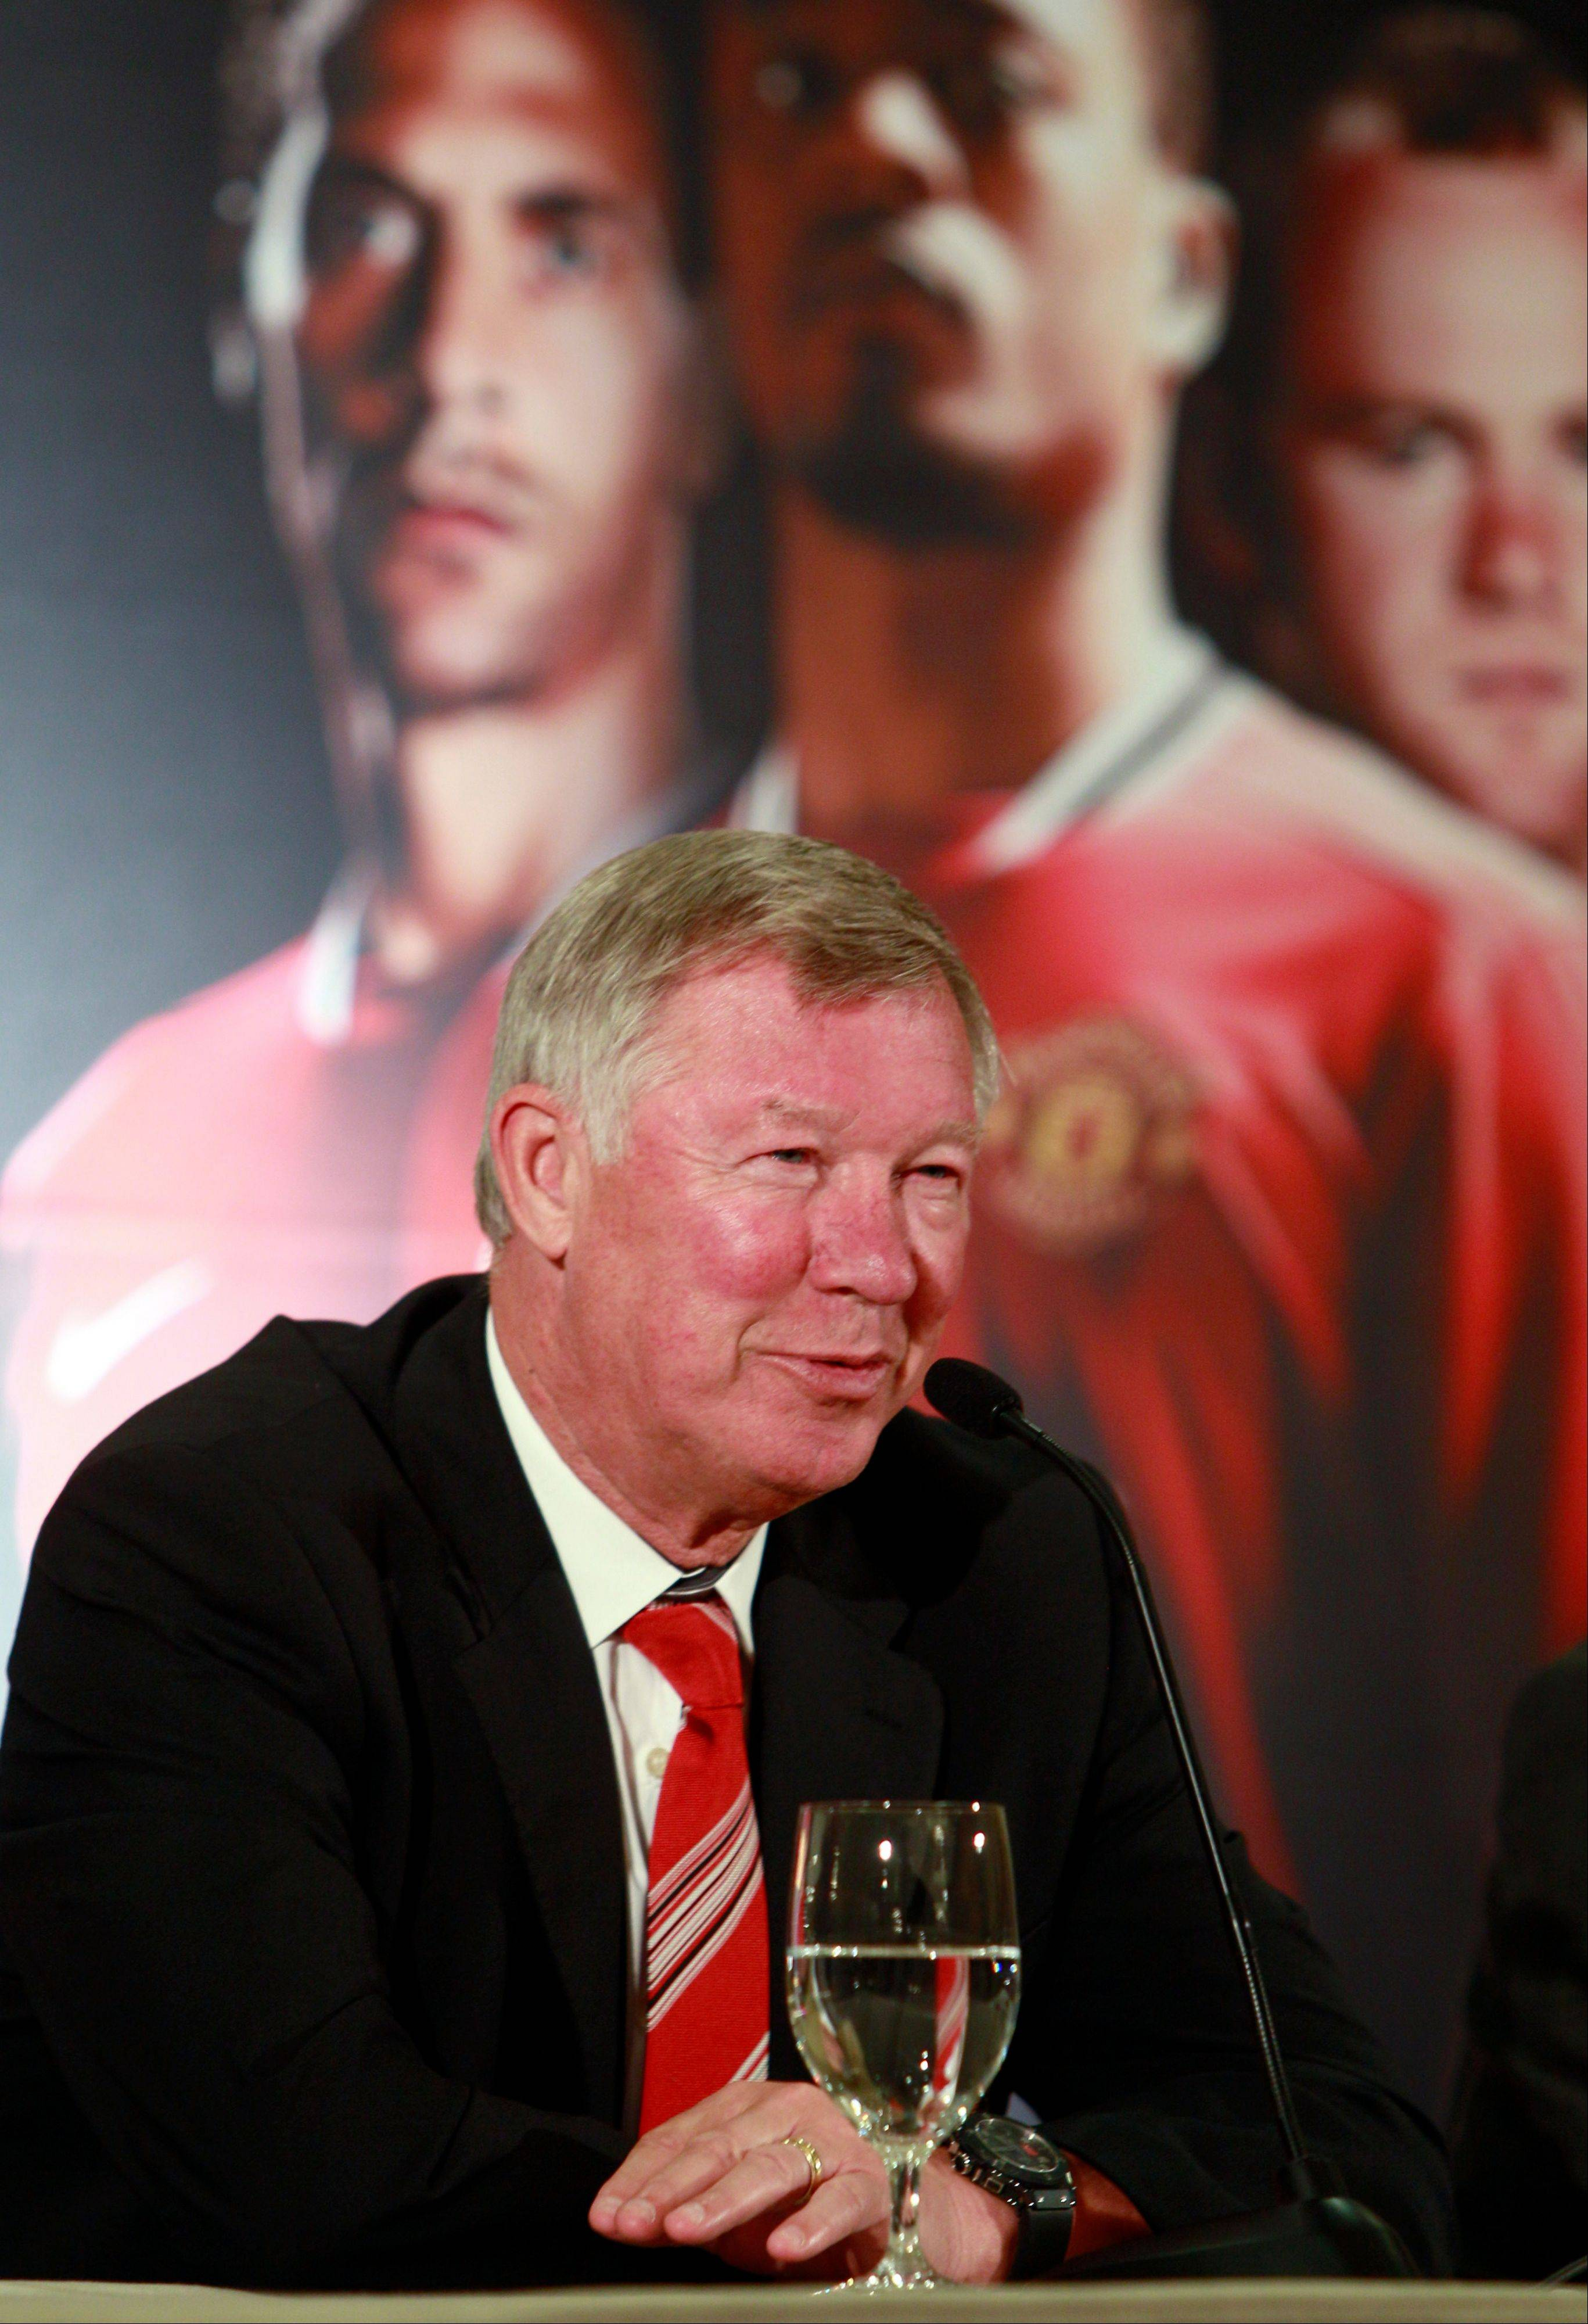 Manchester United manager Sir Alex Ferguson smiles as he speaks at a soccer news conference Thursday in advance of Saturday's match against the Chicago Fire at Soldier Field.